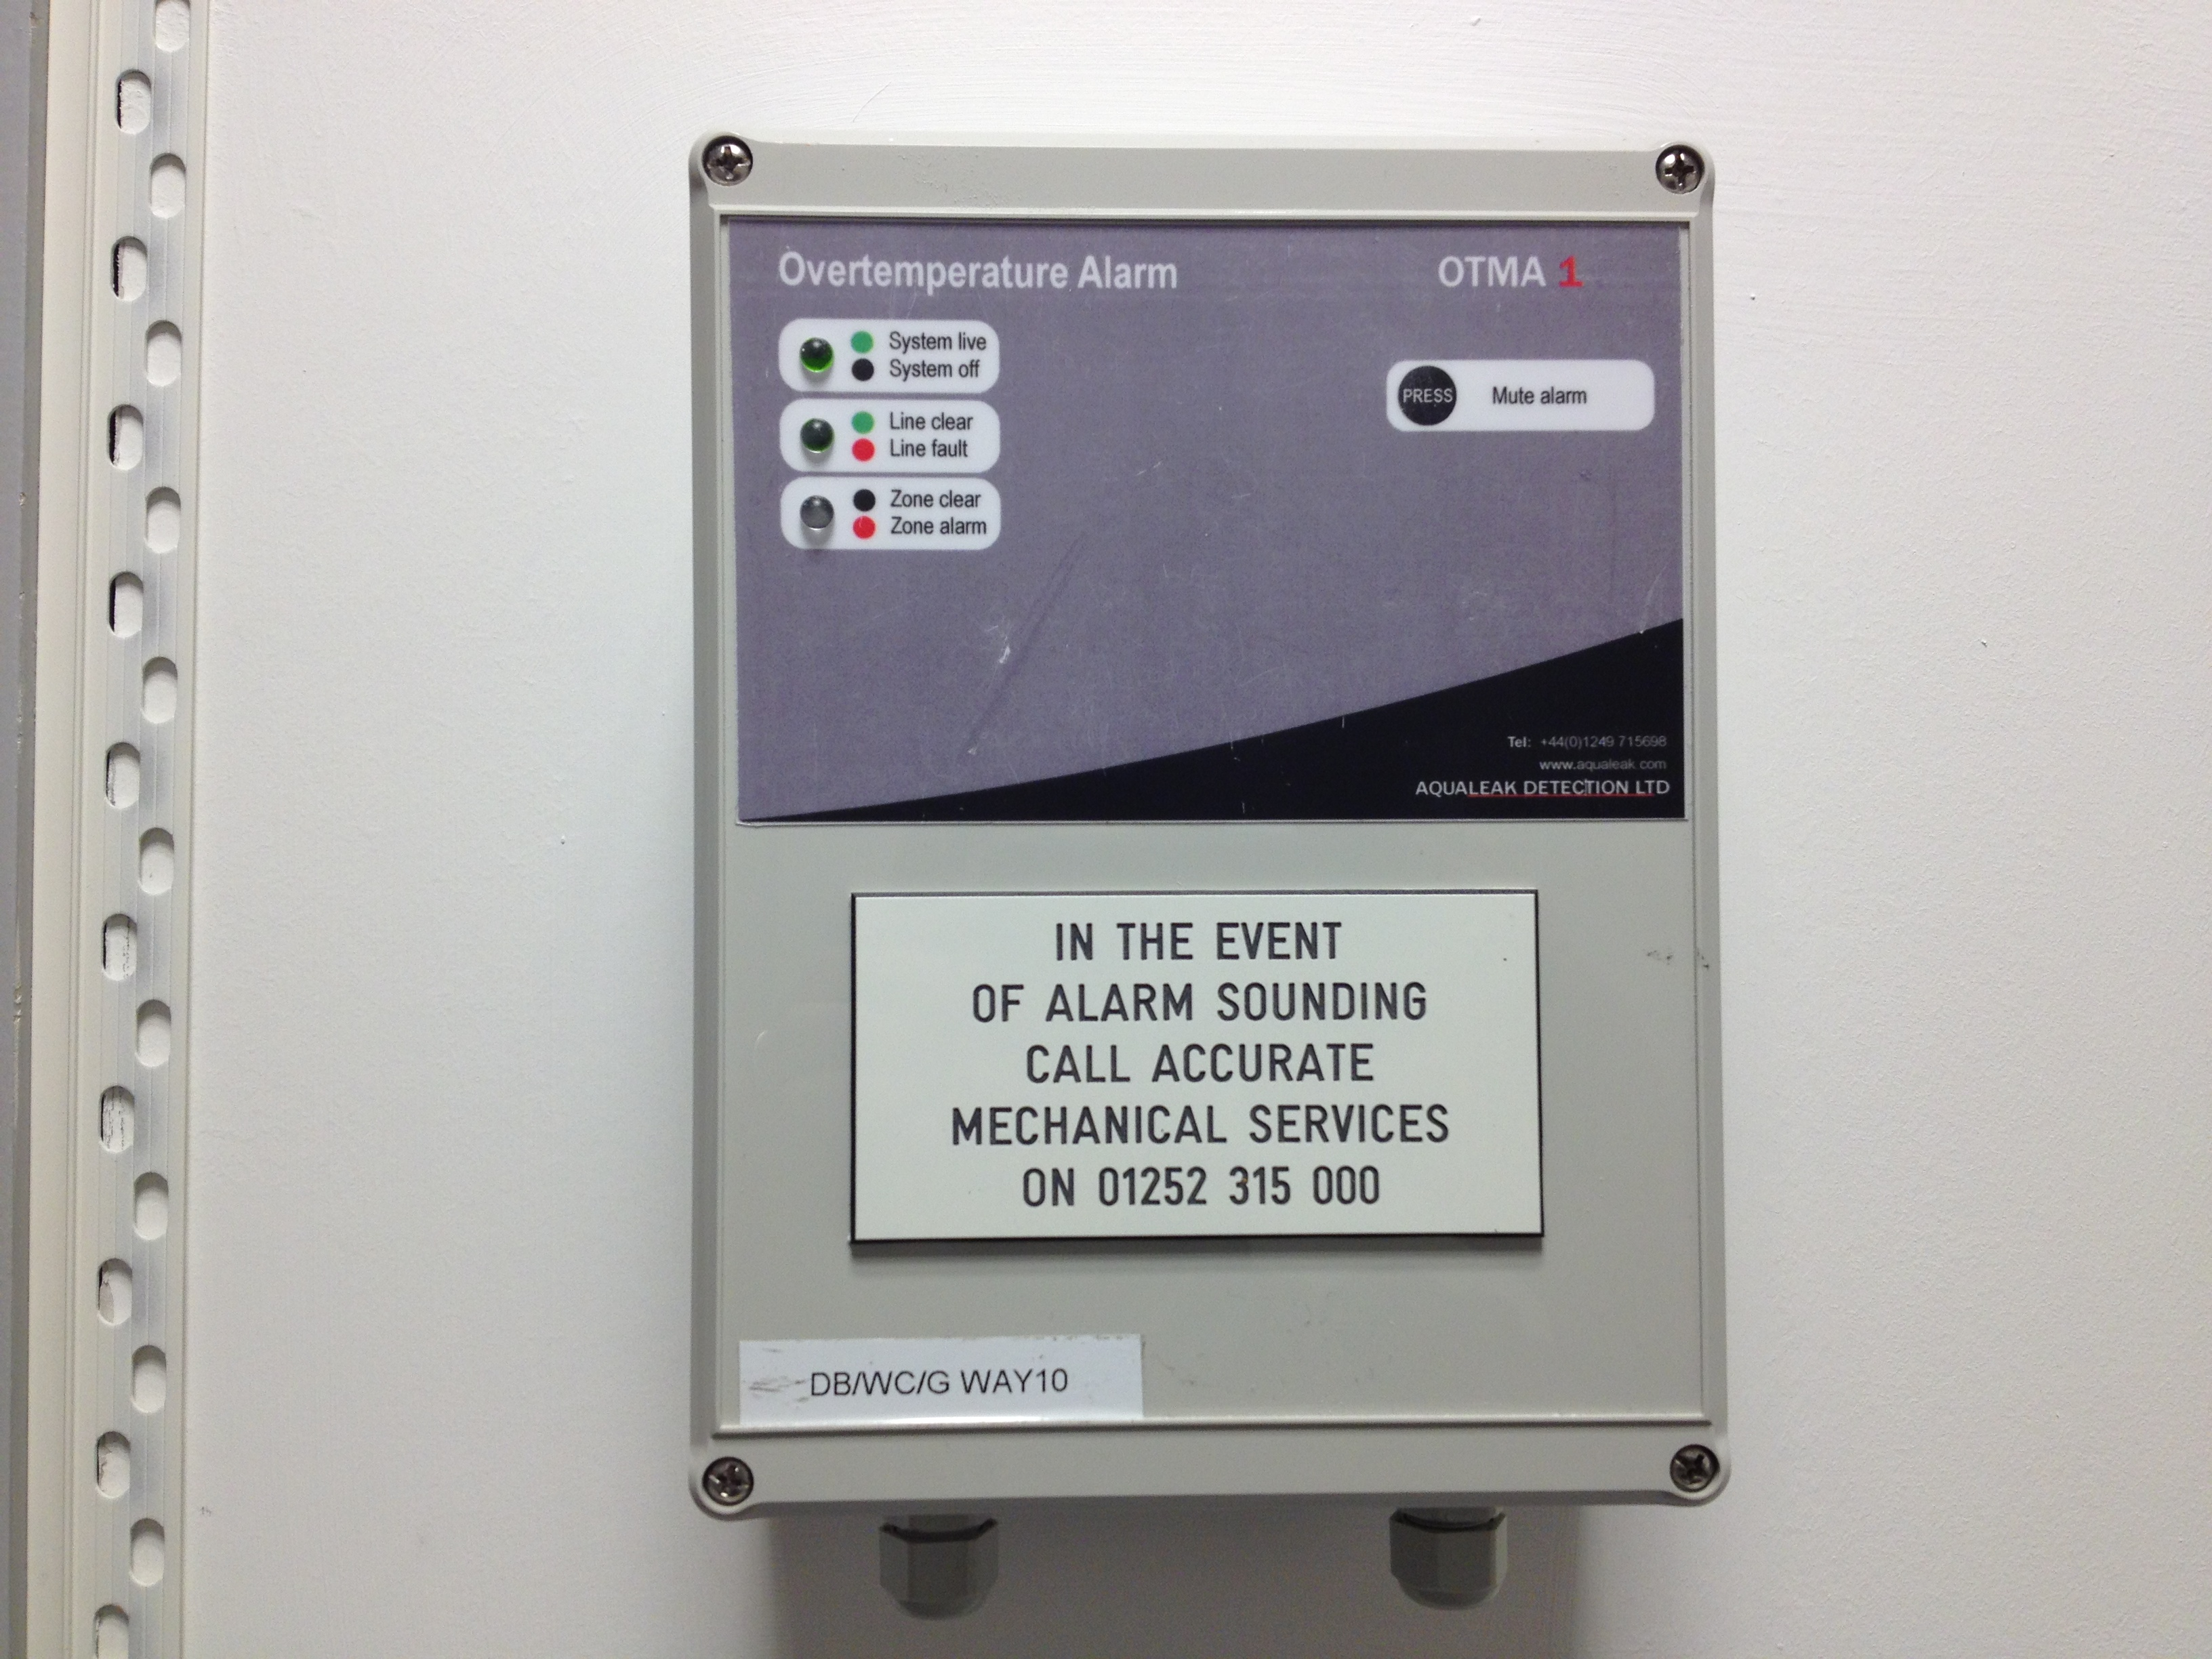 Over temperature alarm panel outside the server room